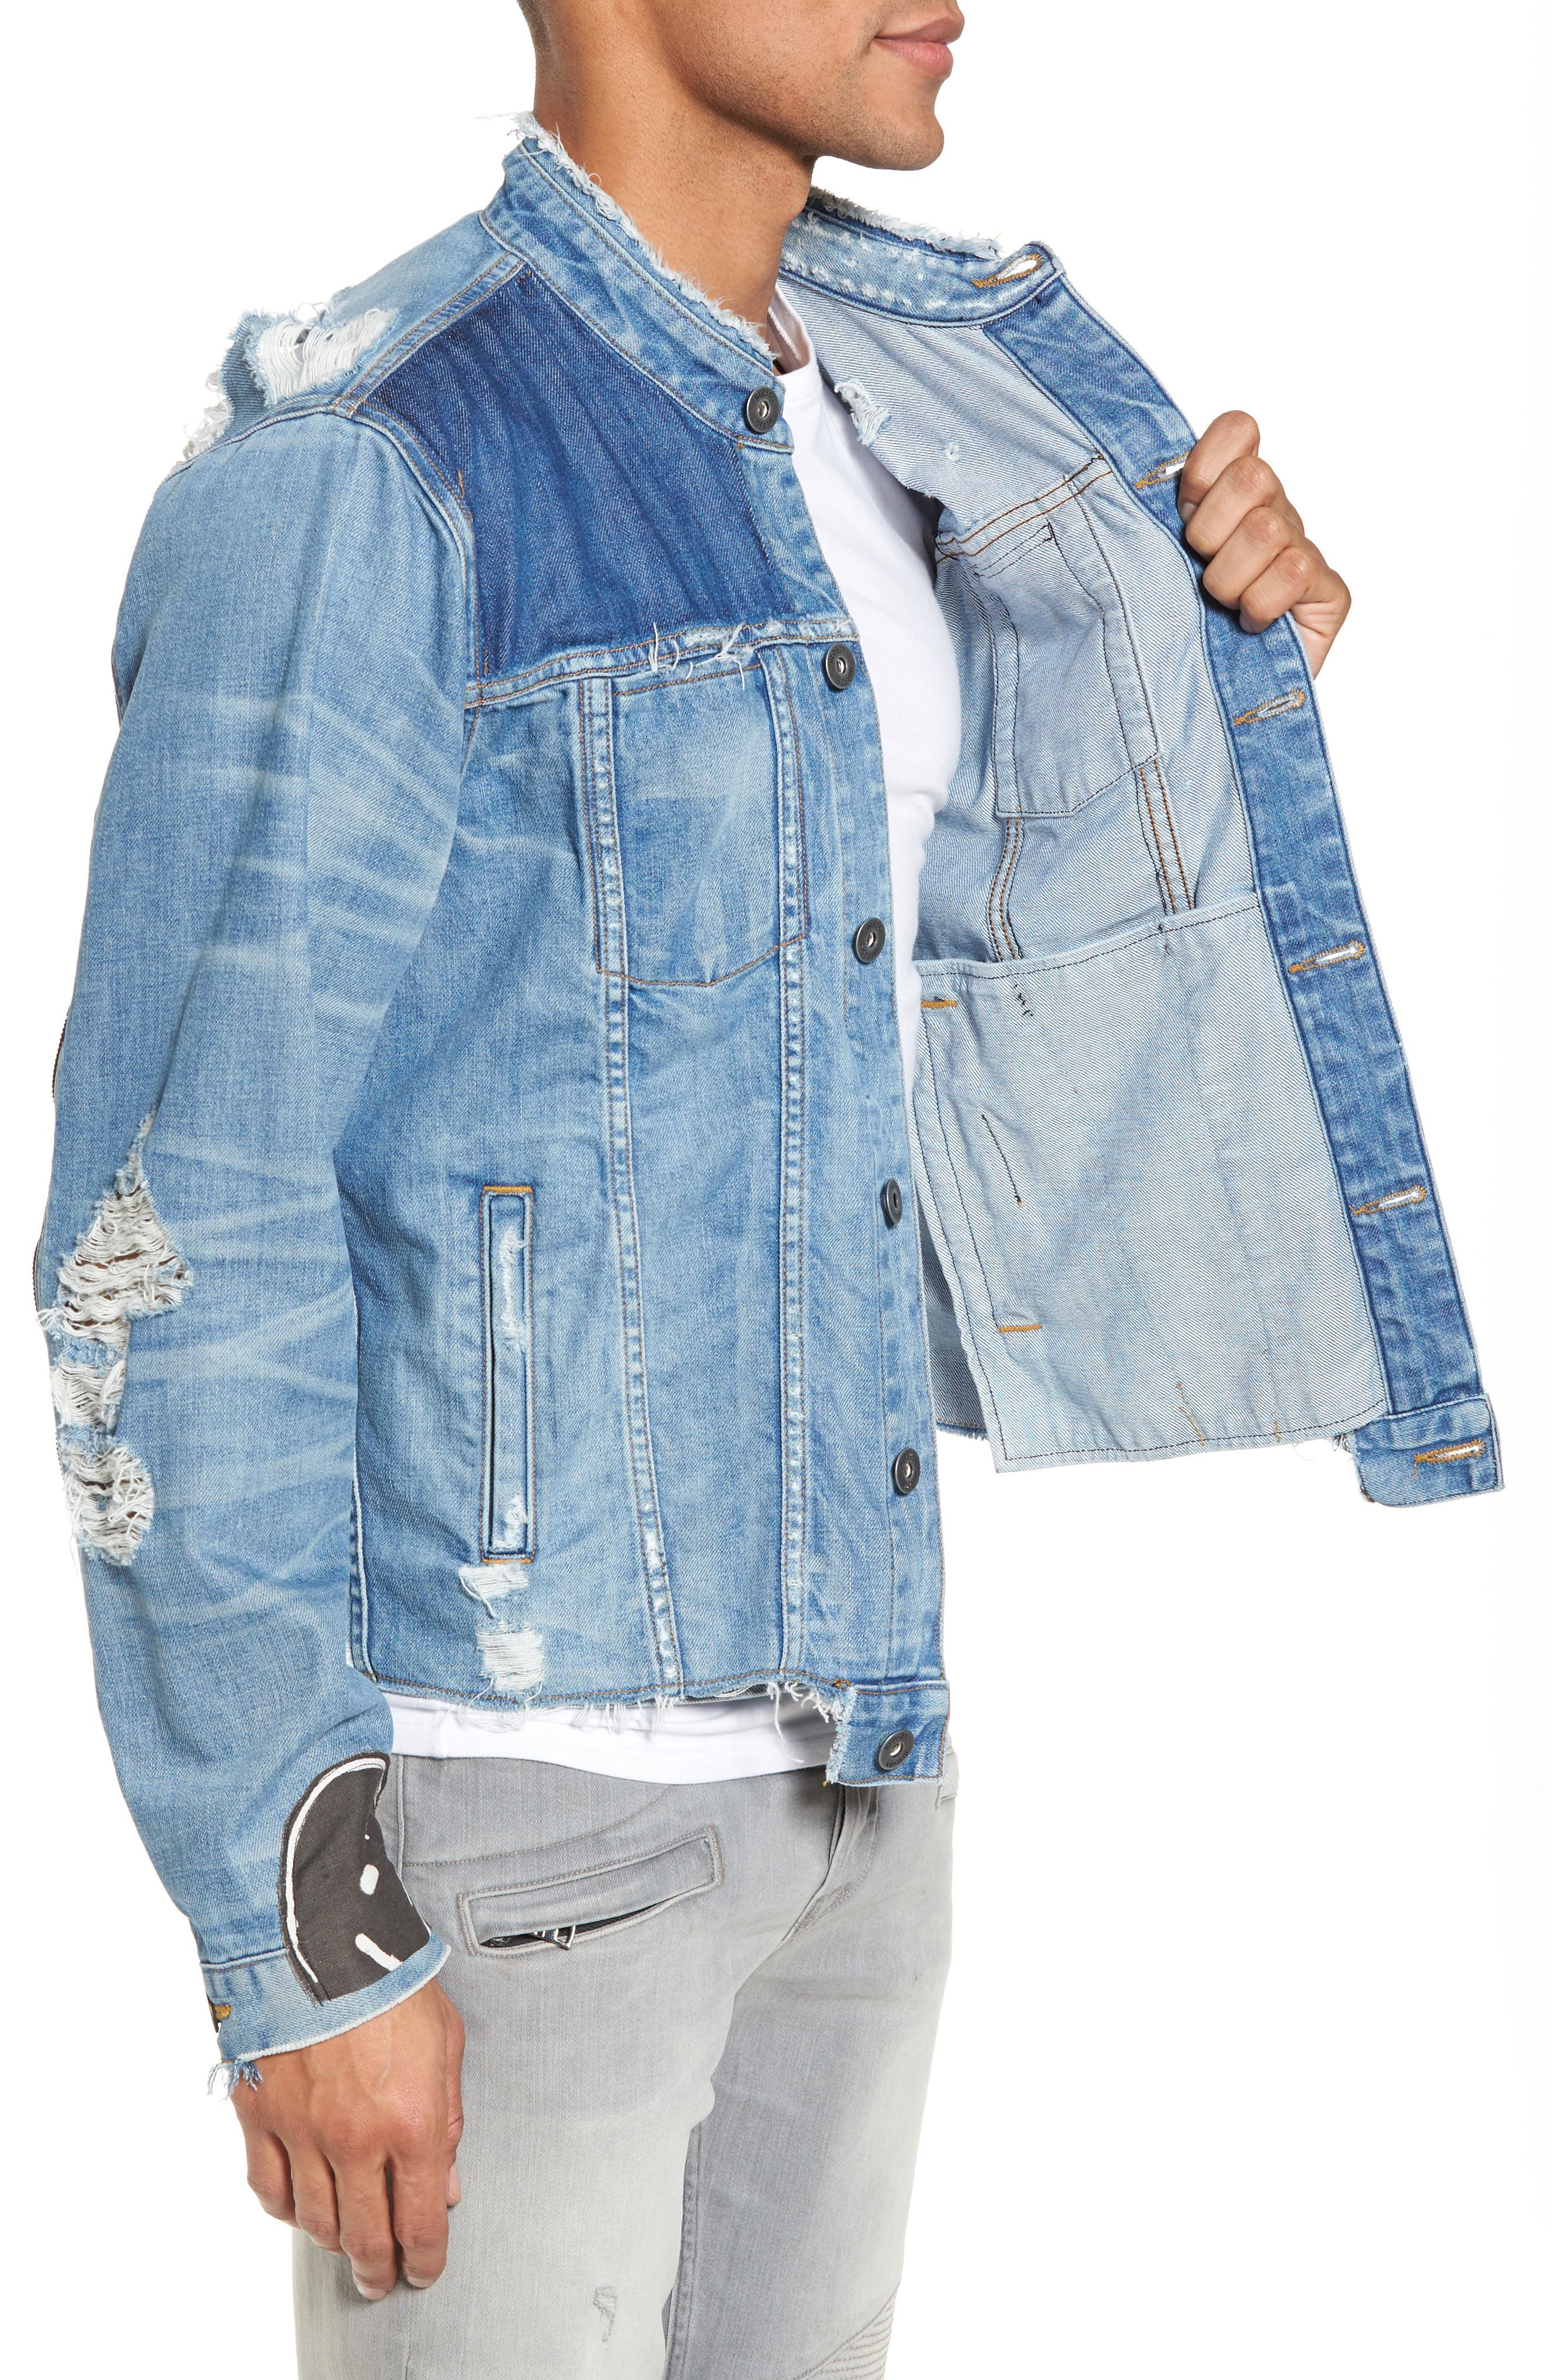 Blaine Crop Denim Jacket,                             Alternate thumbnail 3, color,                             Invert